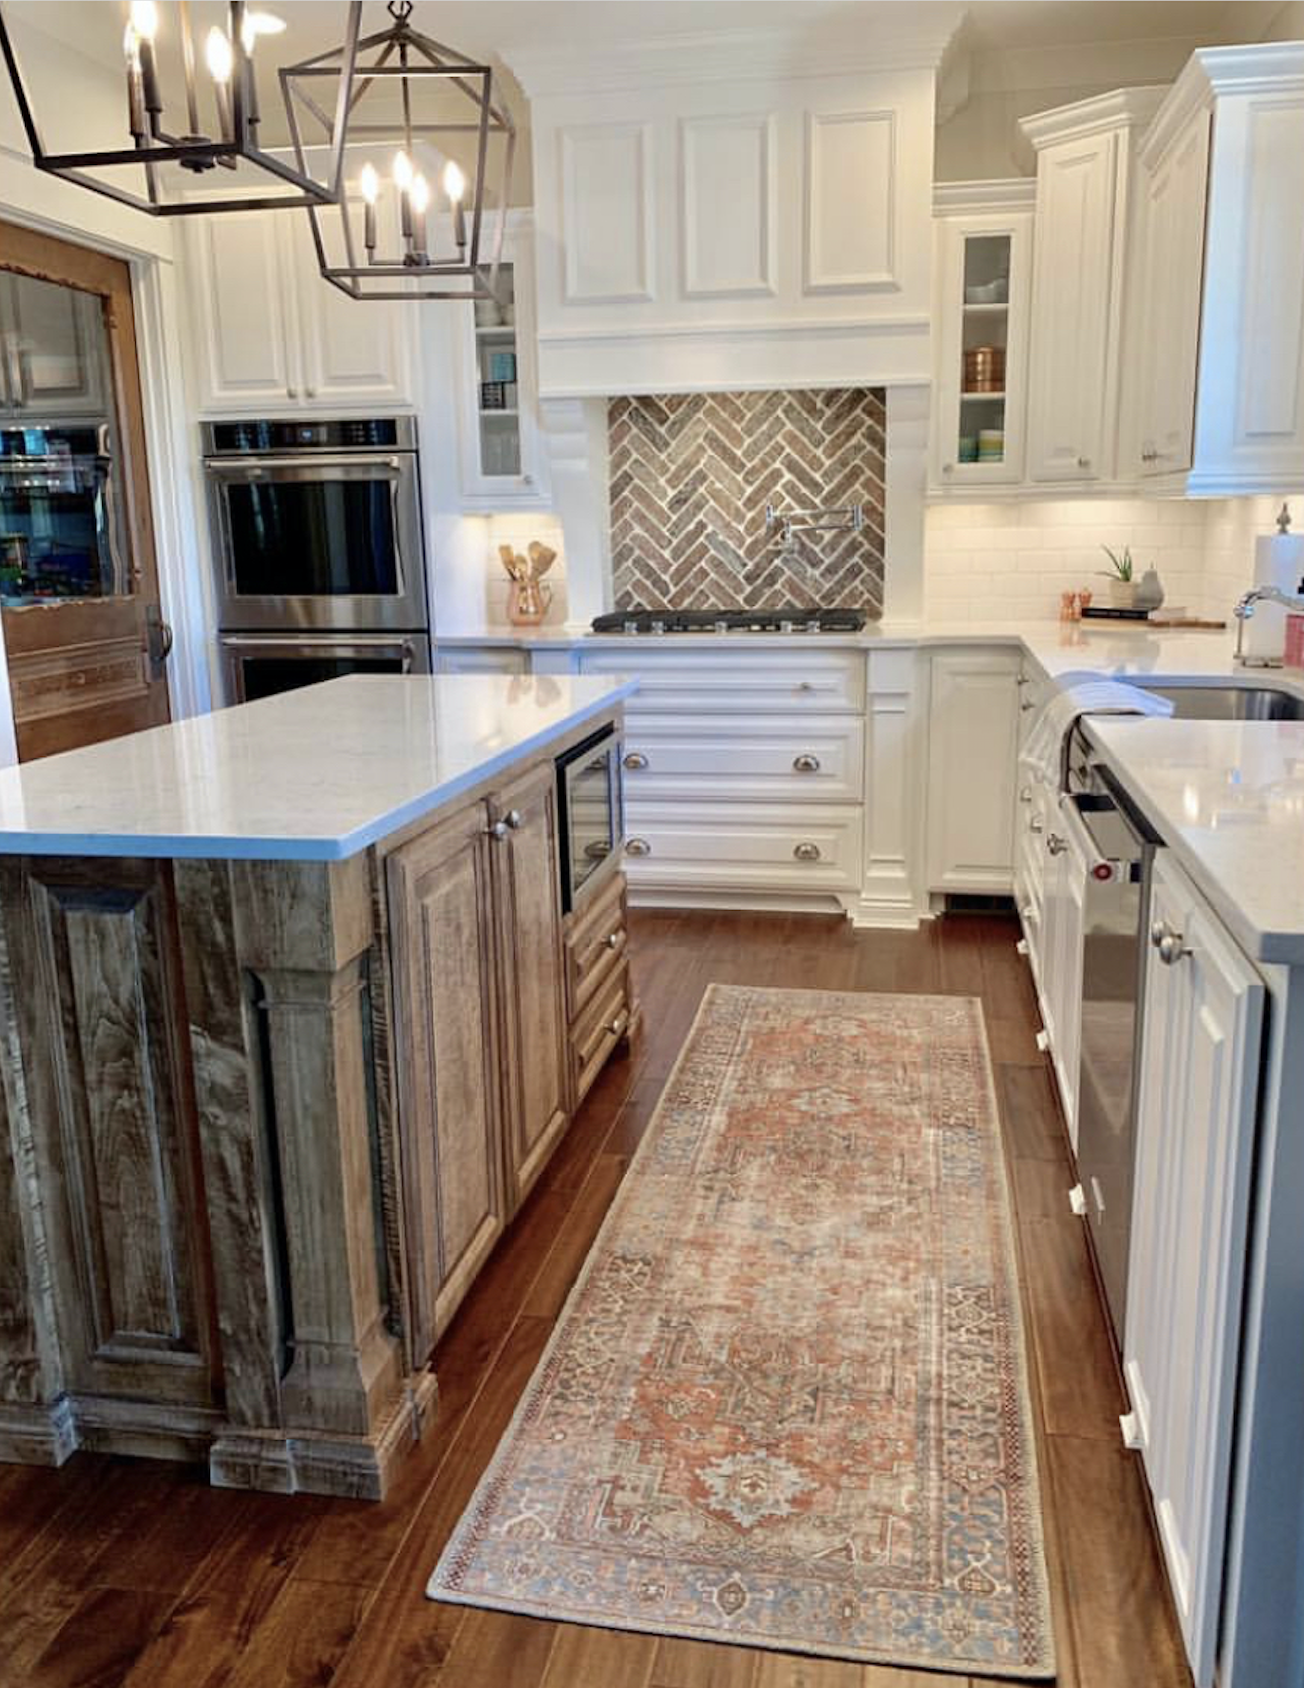 CC and Mike labor day sales terracotta loren rug in a beautiful white kitchen with natural wood island and quartz countertops and white kitchen cabinets with brick backsplash and silver hardware